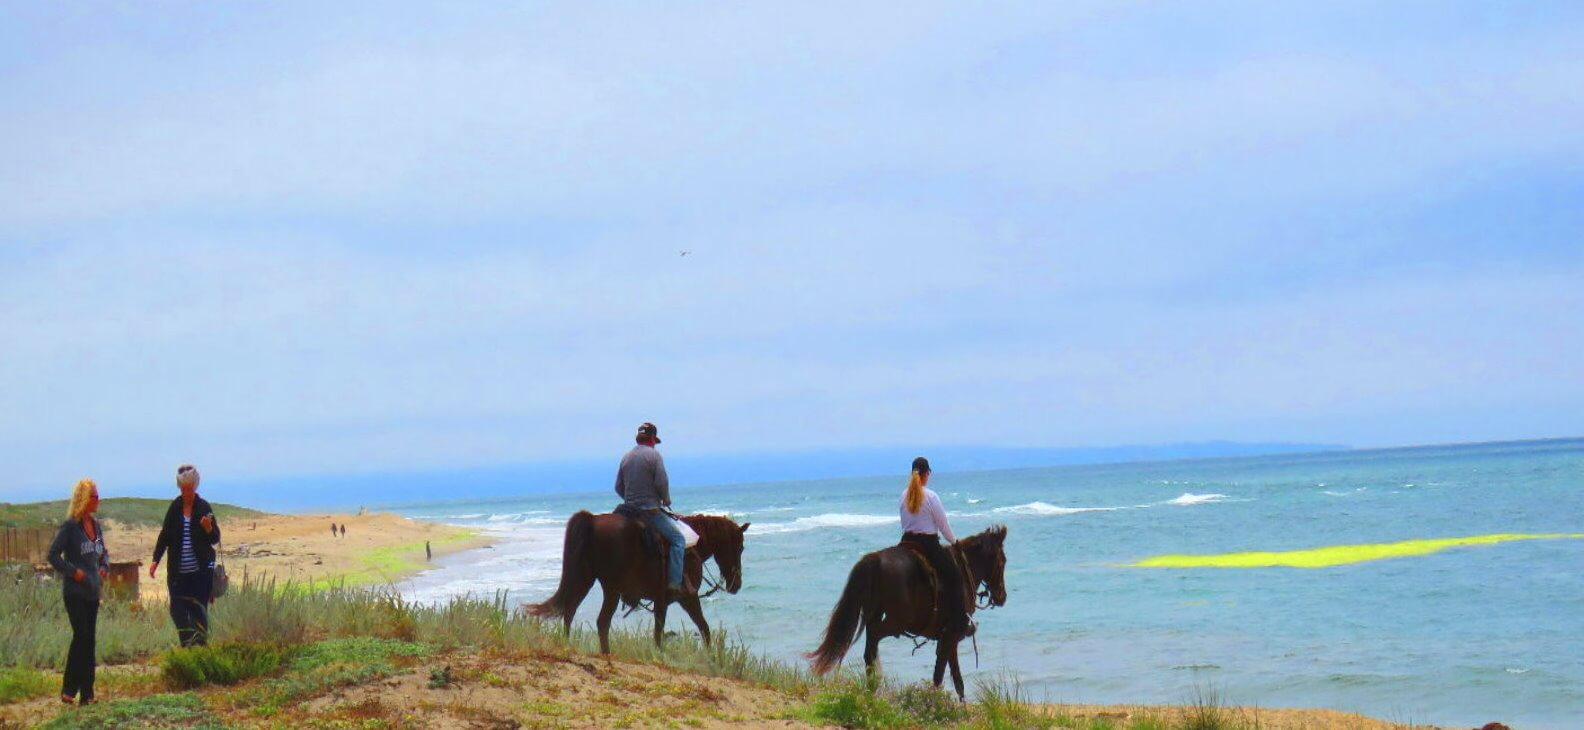 excursions-a-caballo-por-la-playa